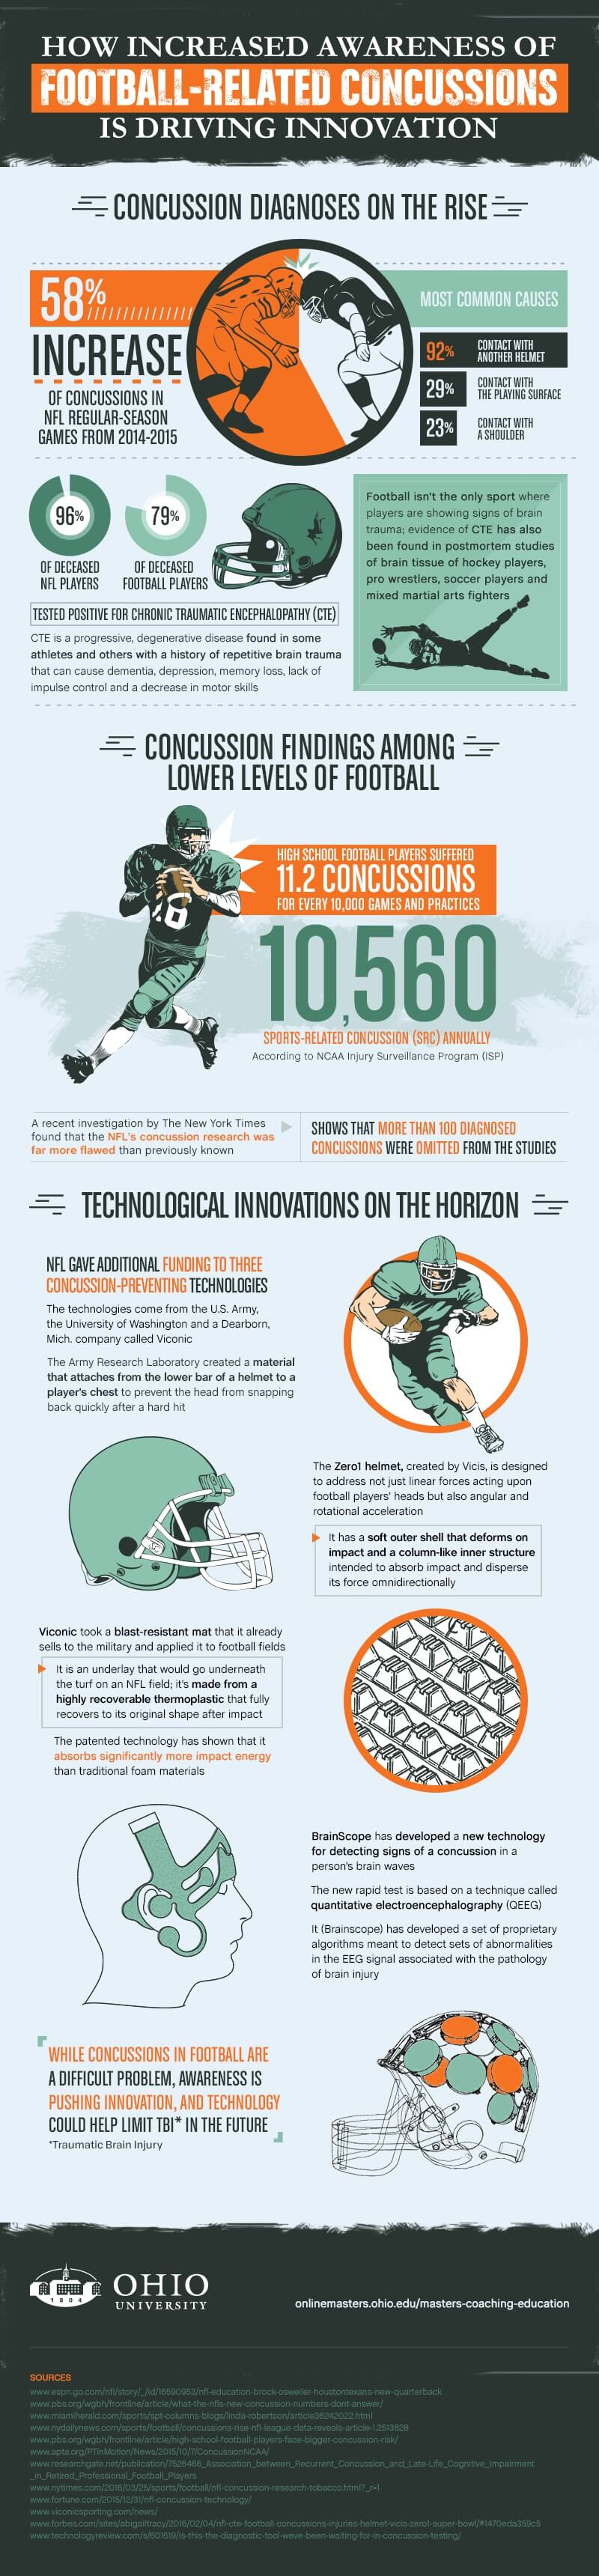 How Increased Awareness About Concussions Is Driving Football Tech Innovations infographic